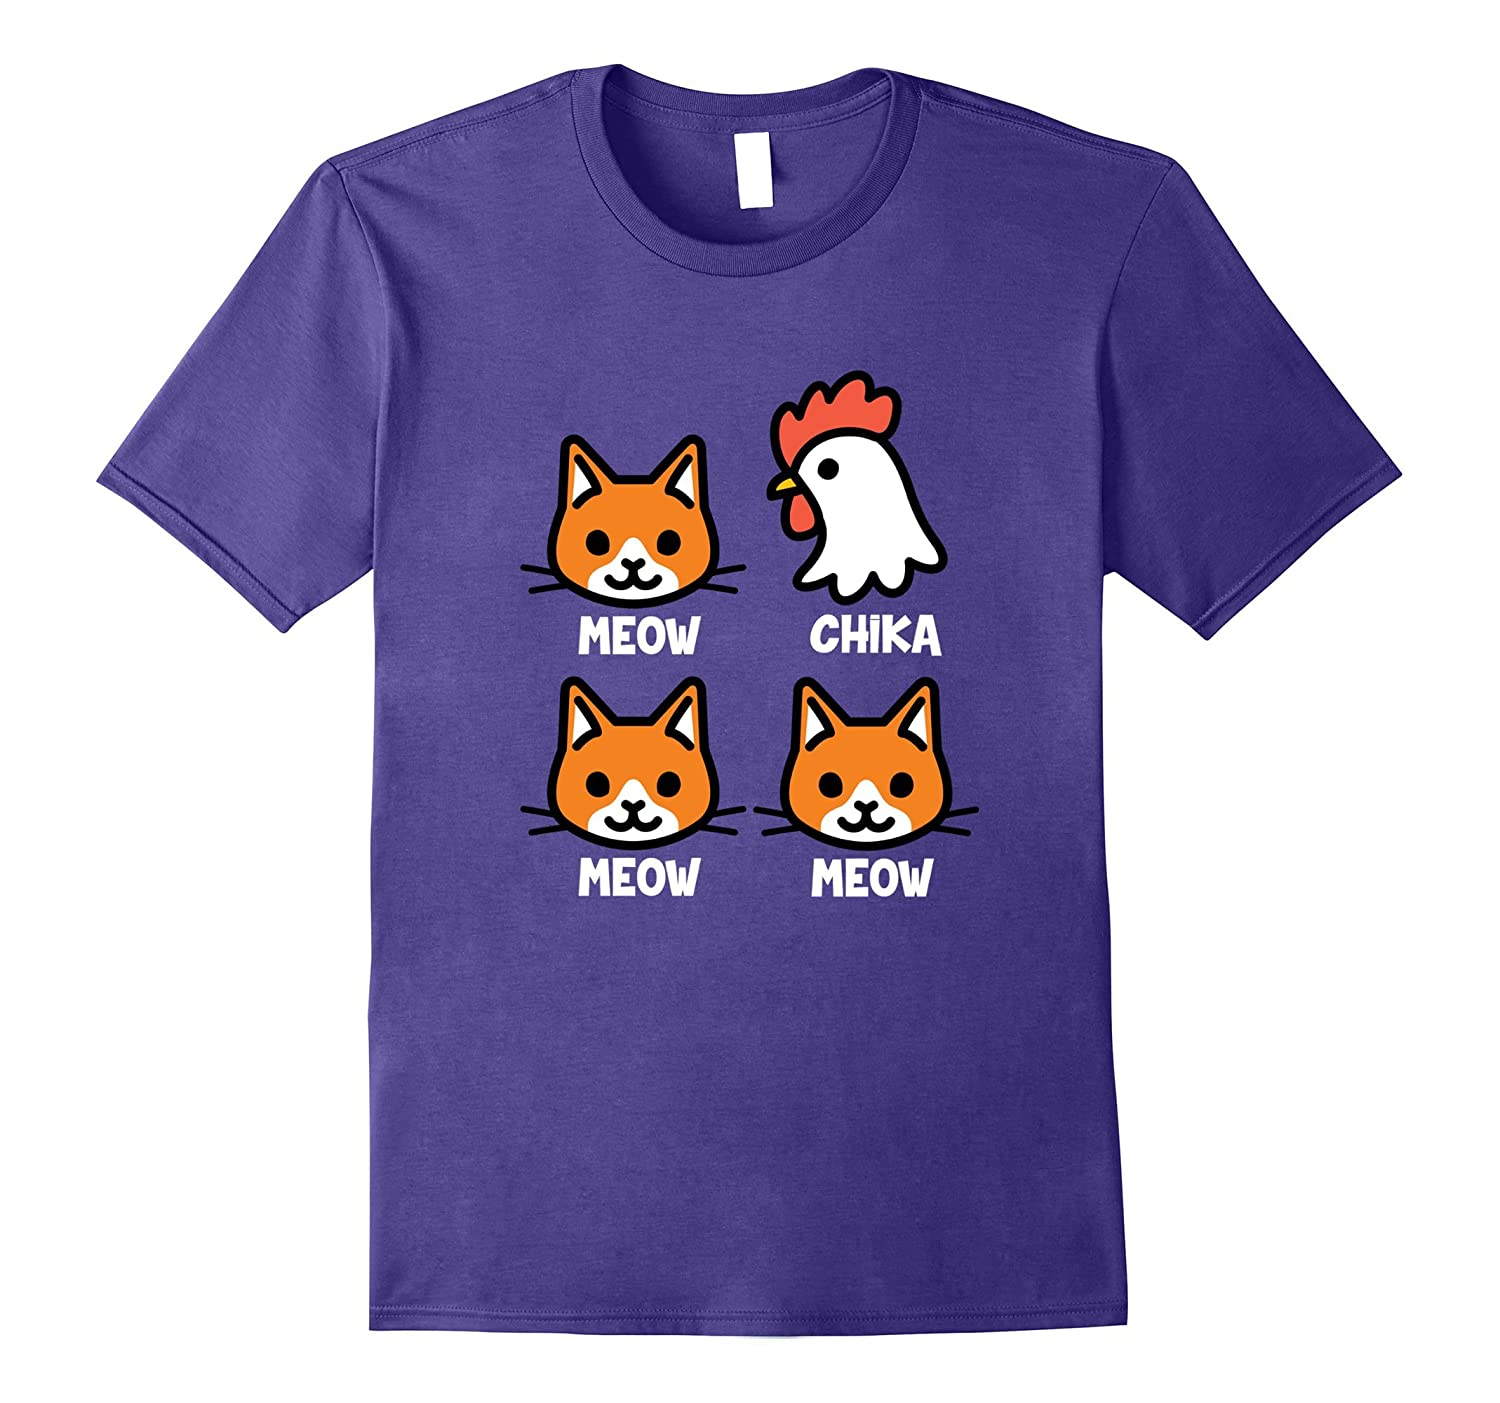 Meow Chicka Meow Meow! Funny Cat And Chicken Lover T-Shirt-T-Shirt